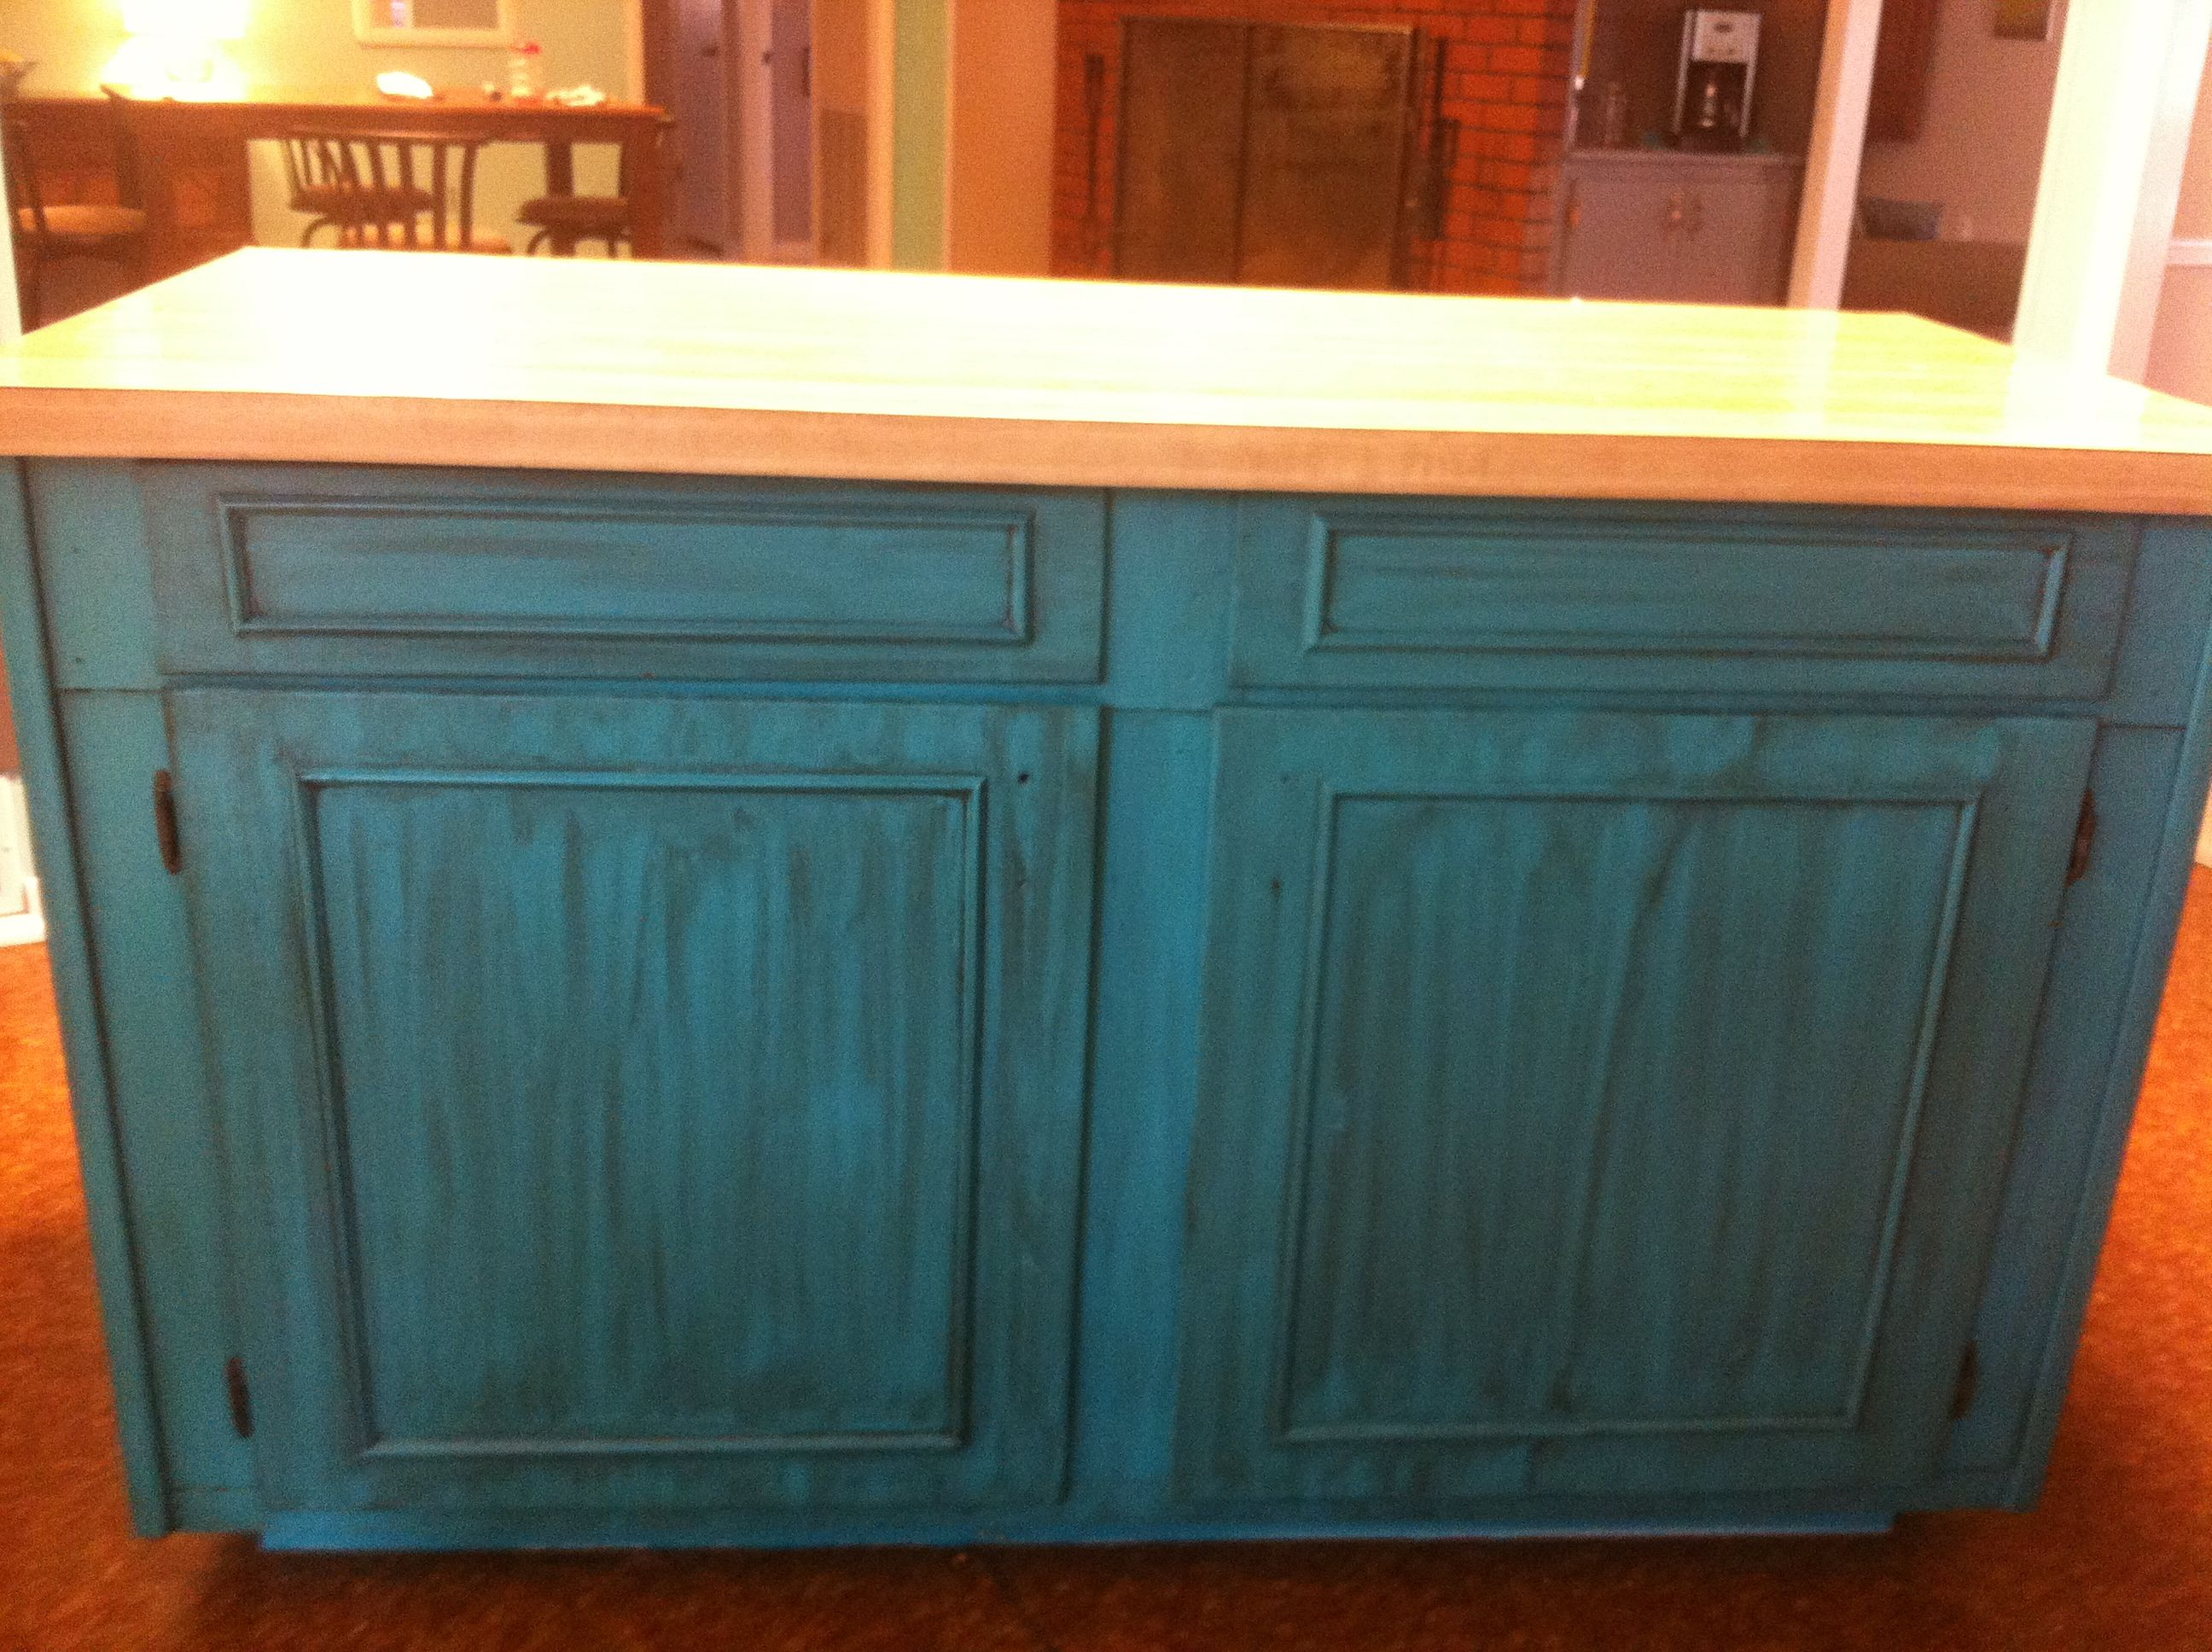 Teal Turquoise Island Kitchen Distressed Turquoise Kitchen Cabinets Kitchen Colors Rustic Kitchen Cabinets